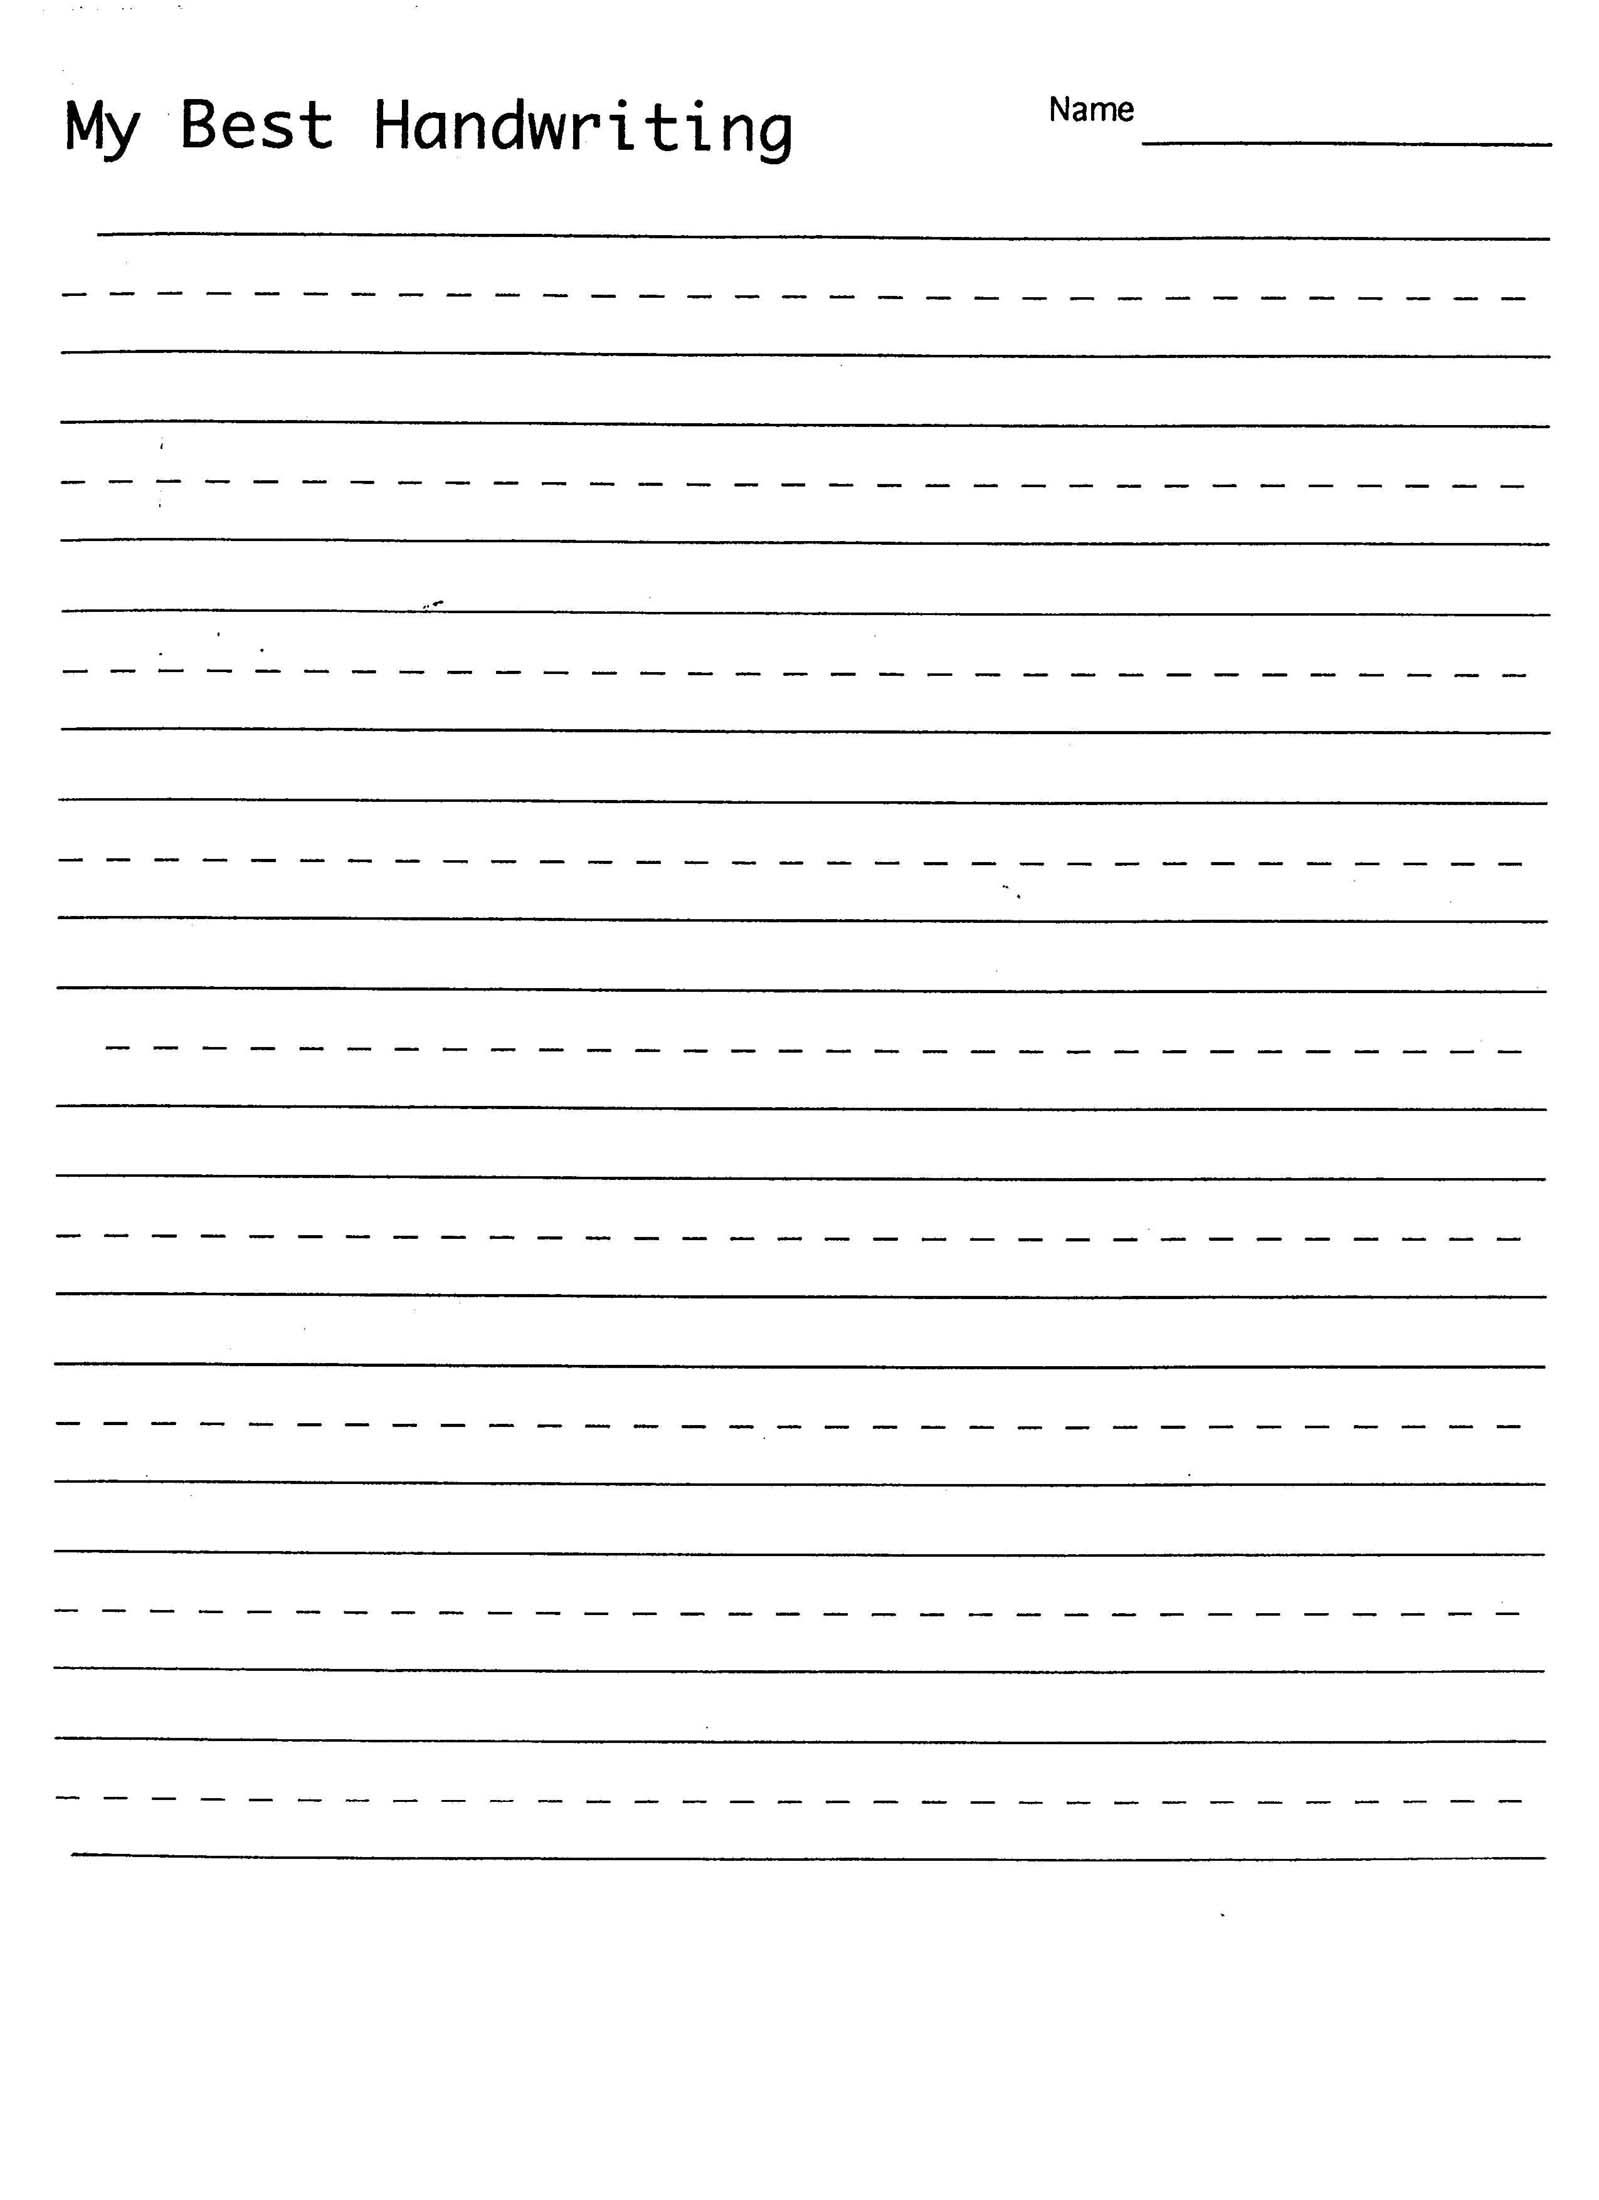 handwriting practice sheet 1st grade handwriting handwriting practice sheets handwriting. Black Bedroom Furniture Sets. Home Design Ideas